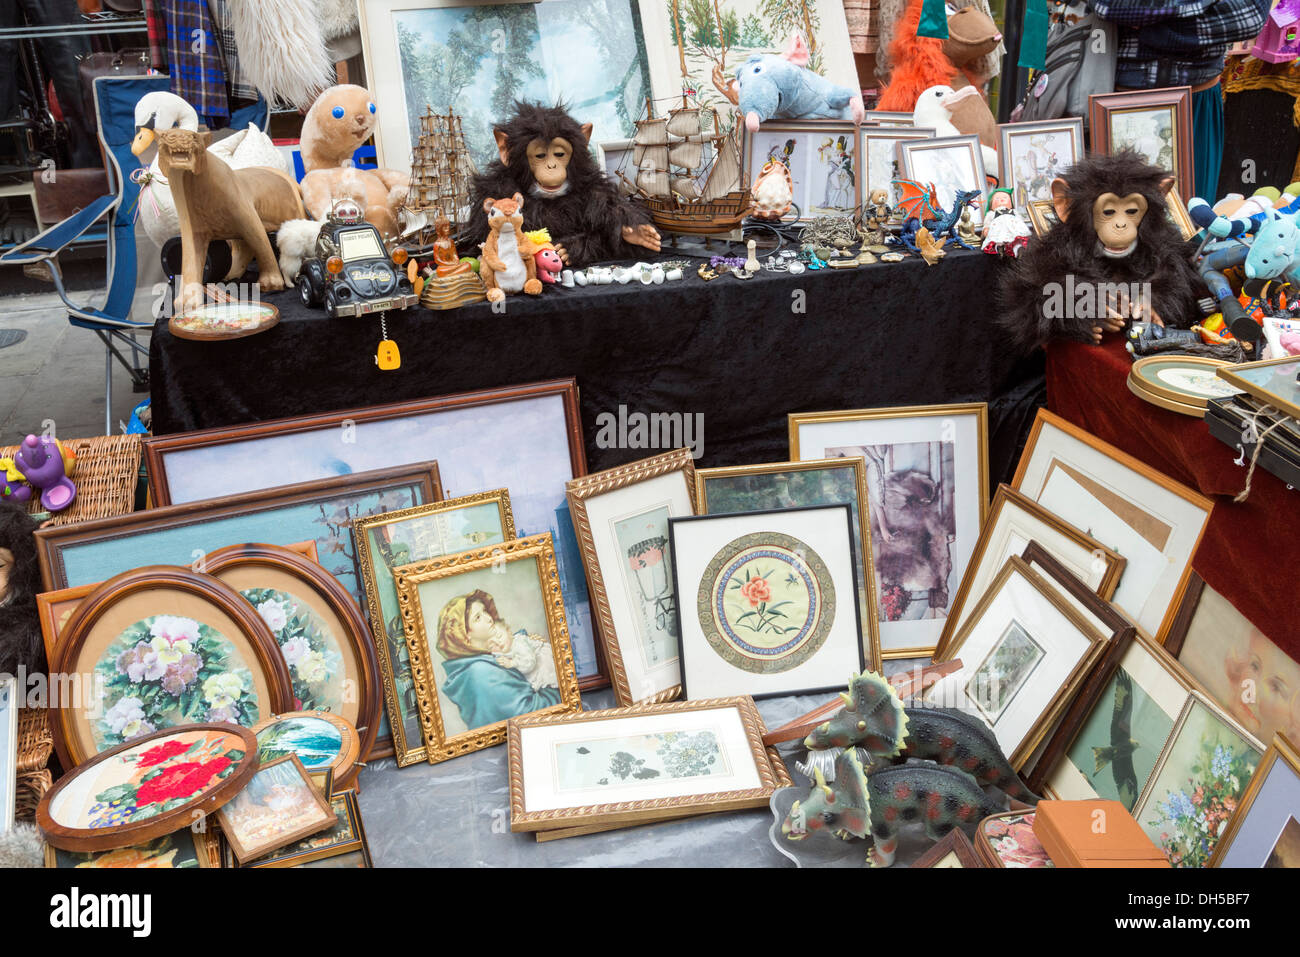 Stall selling variety of second hand items in Brick Lane Market, Tower Hamlets, London, England, UK - Stock Image